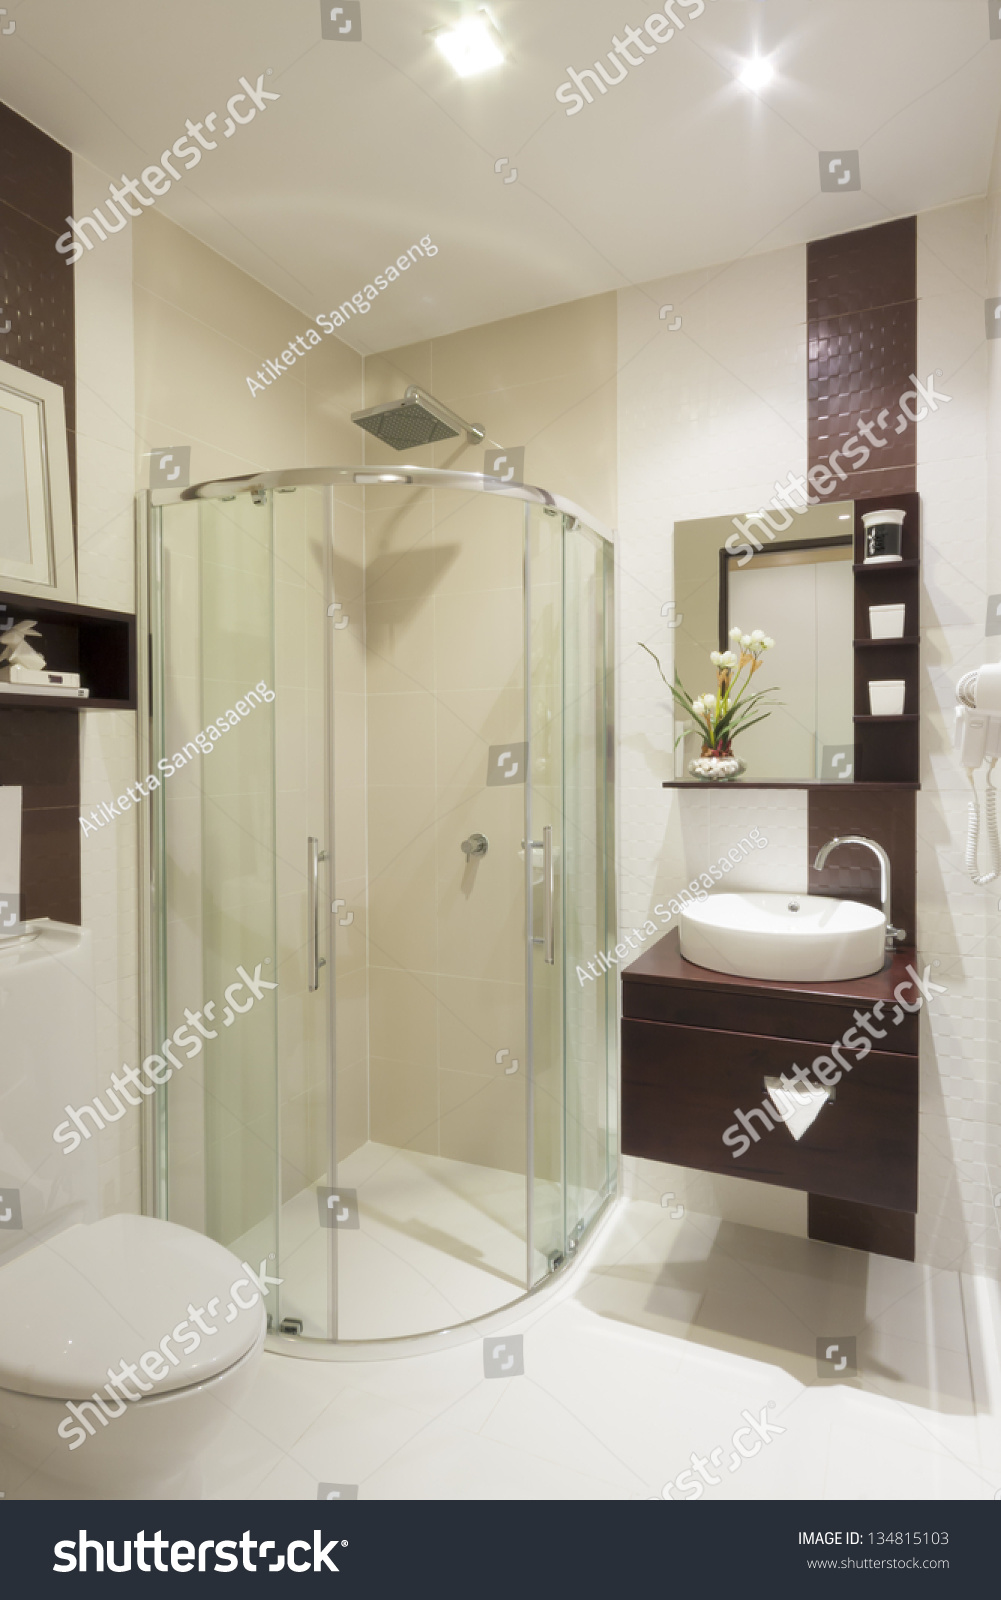 A modern, marble tile bathroom with an open walk-in shower and ...